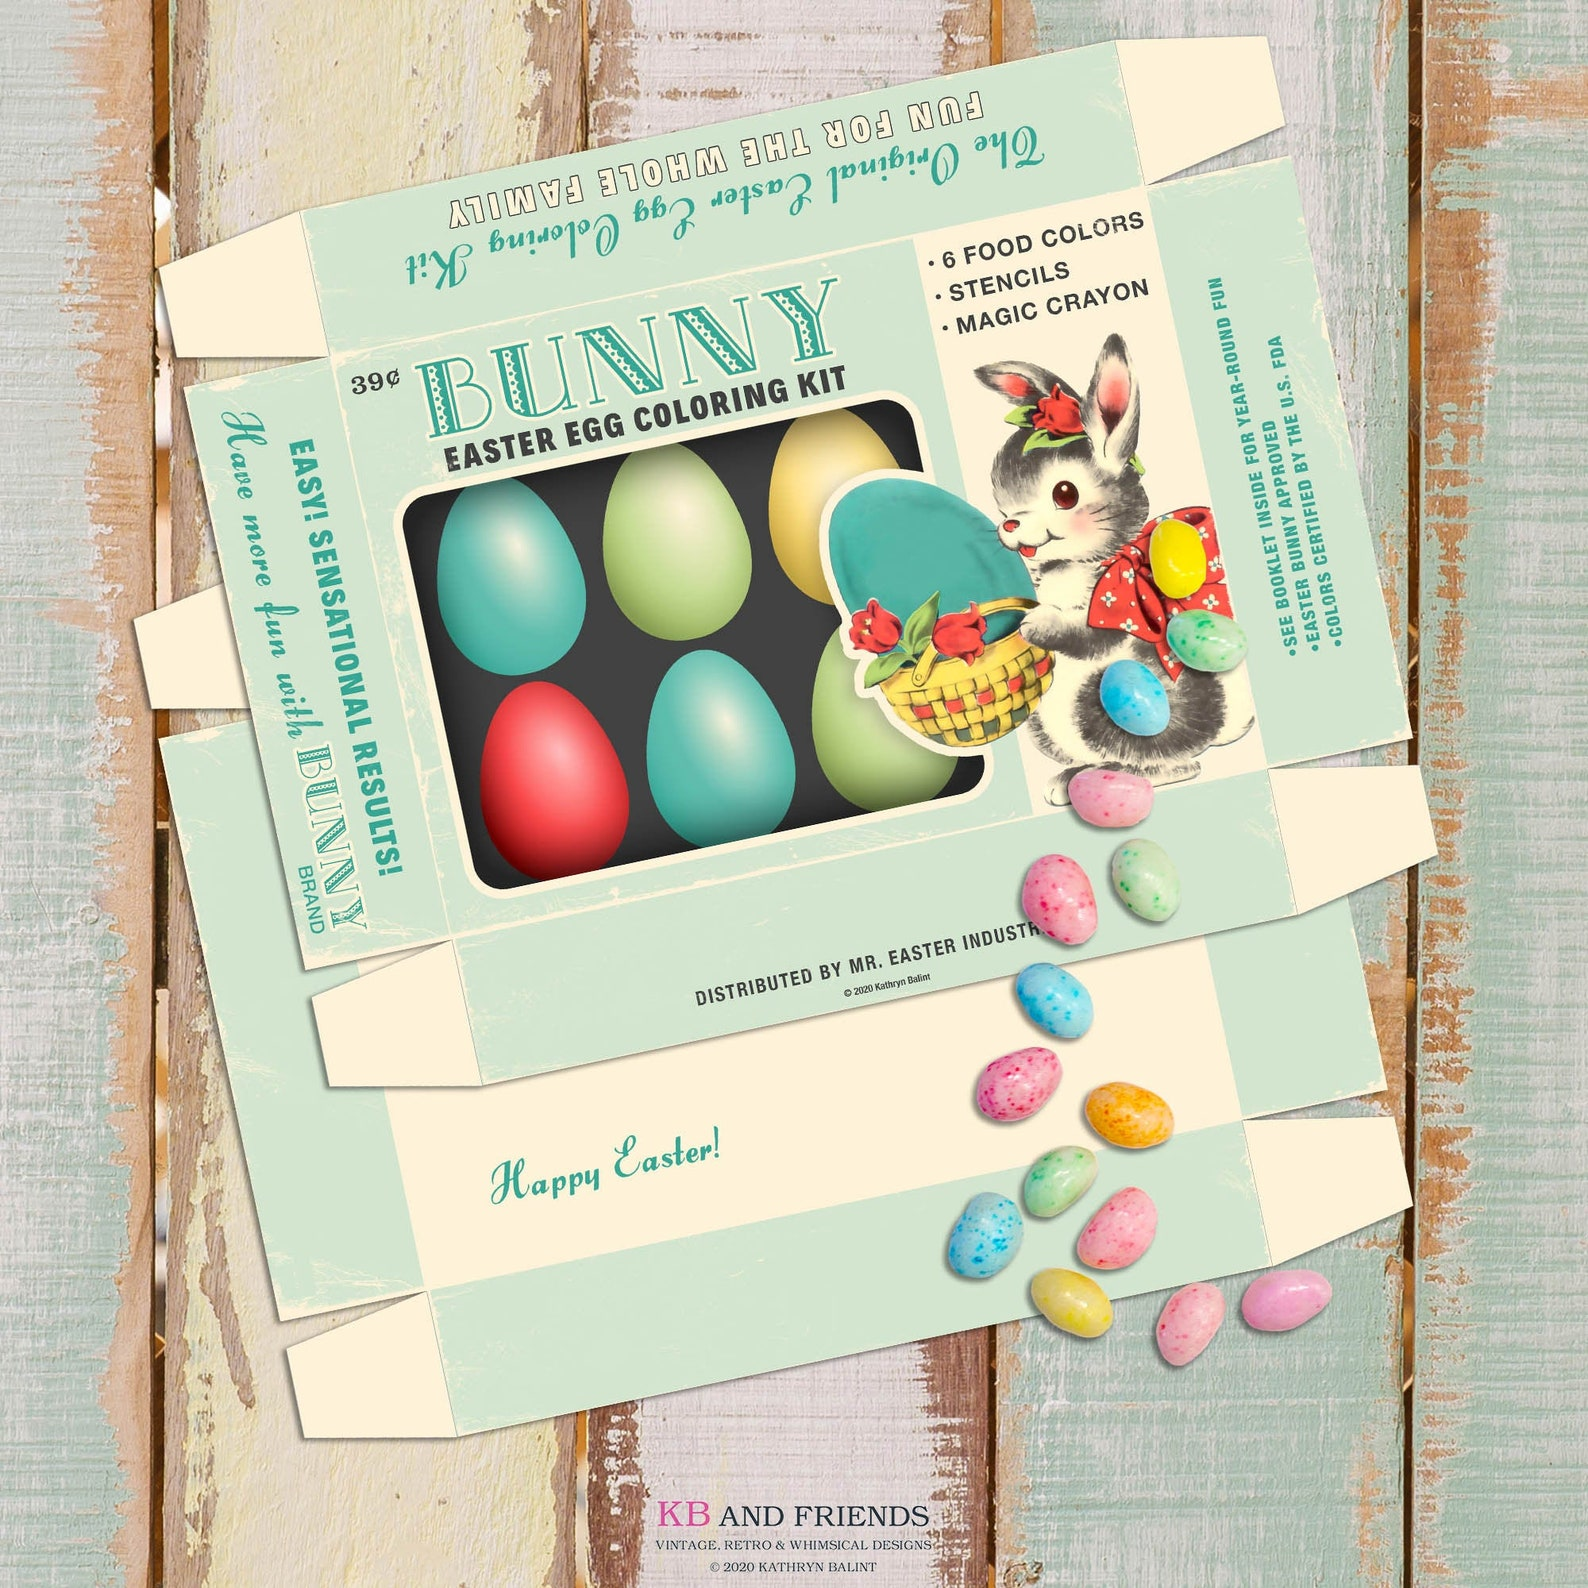 KB and Friends Printable Retro Easter Egg Coloring Box with Bunny